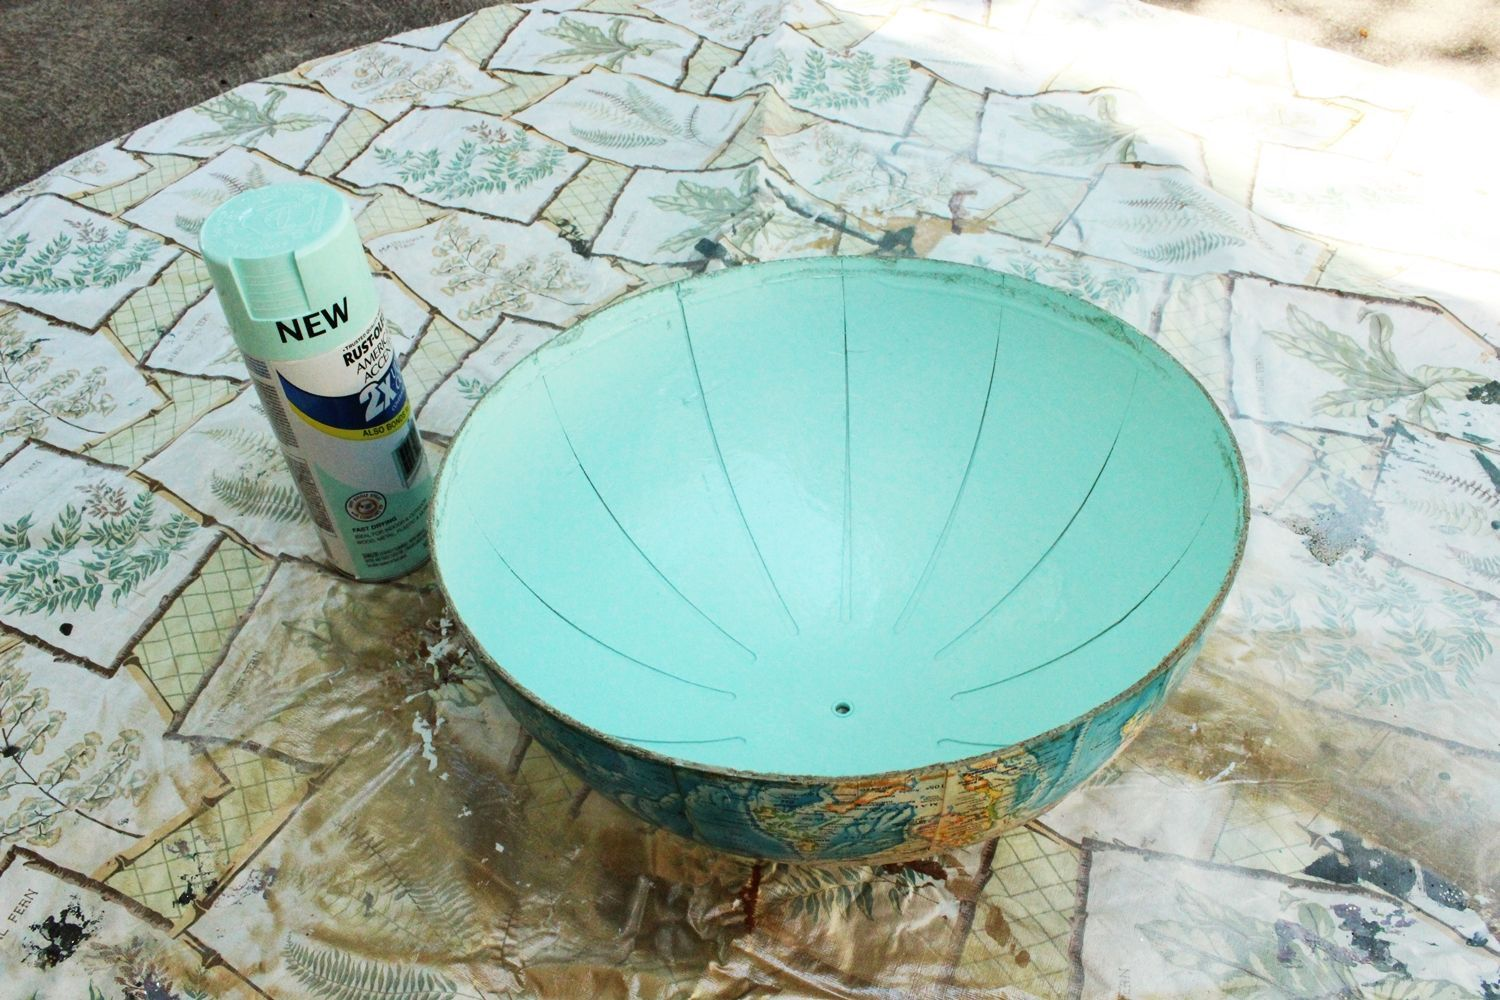 Globe-after-spray-paint